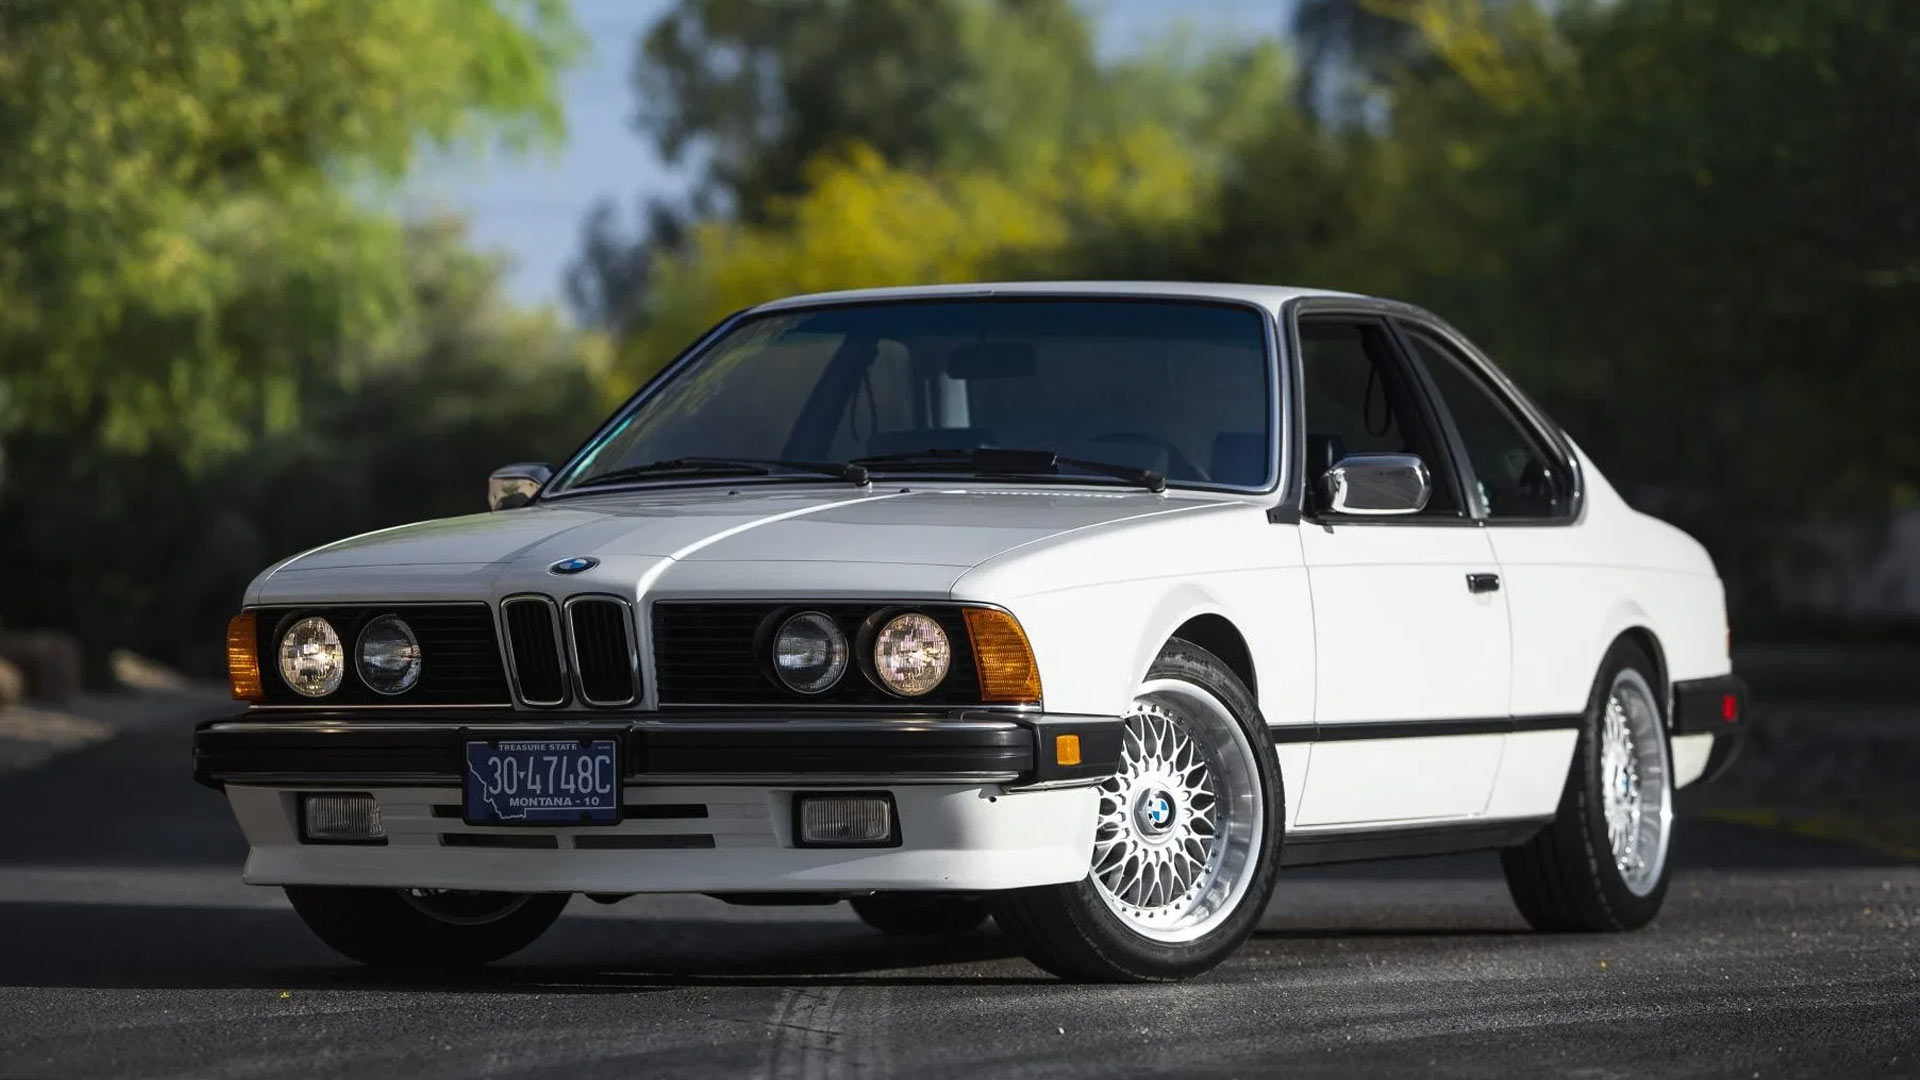 The 1984 BMW 633CSi Angled Front View